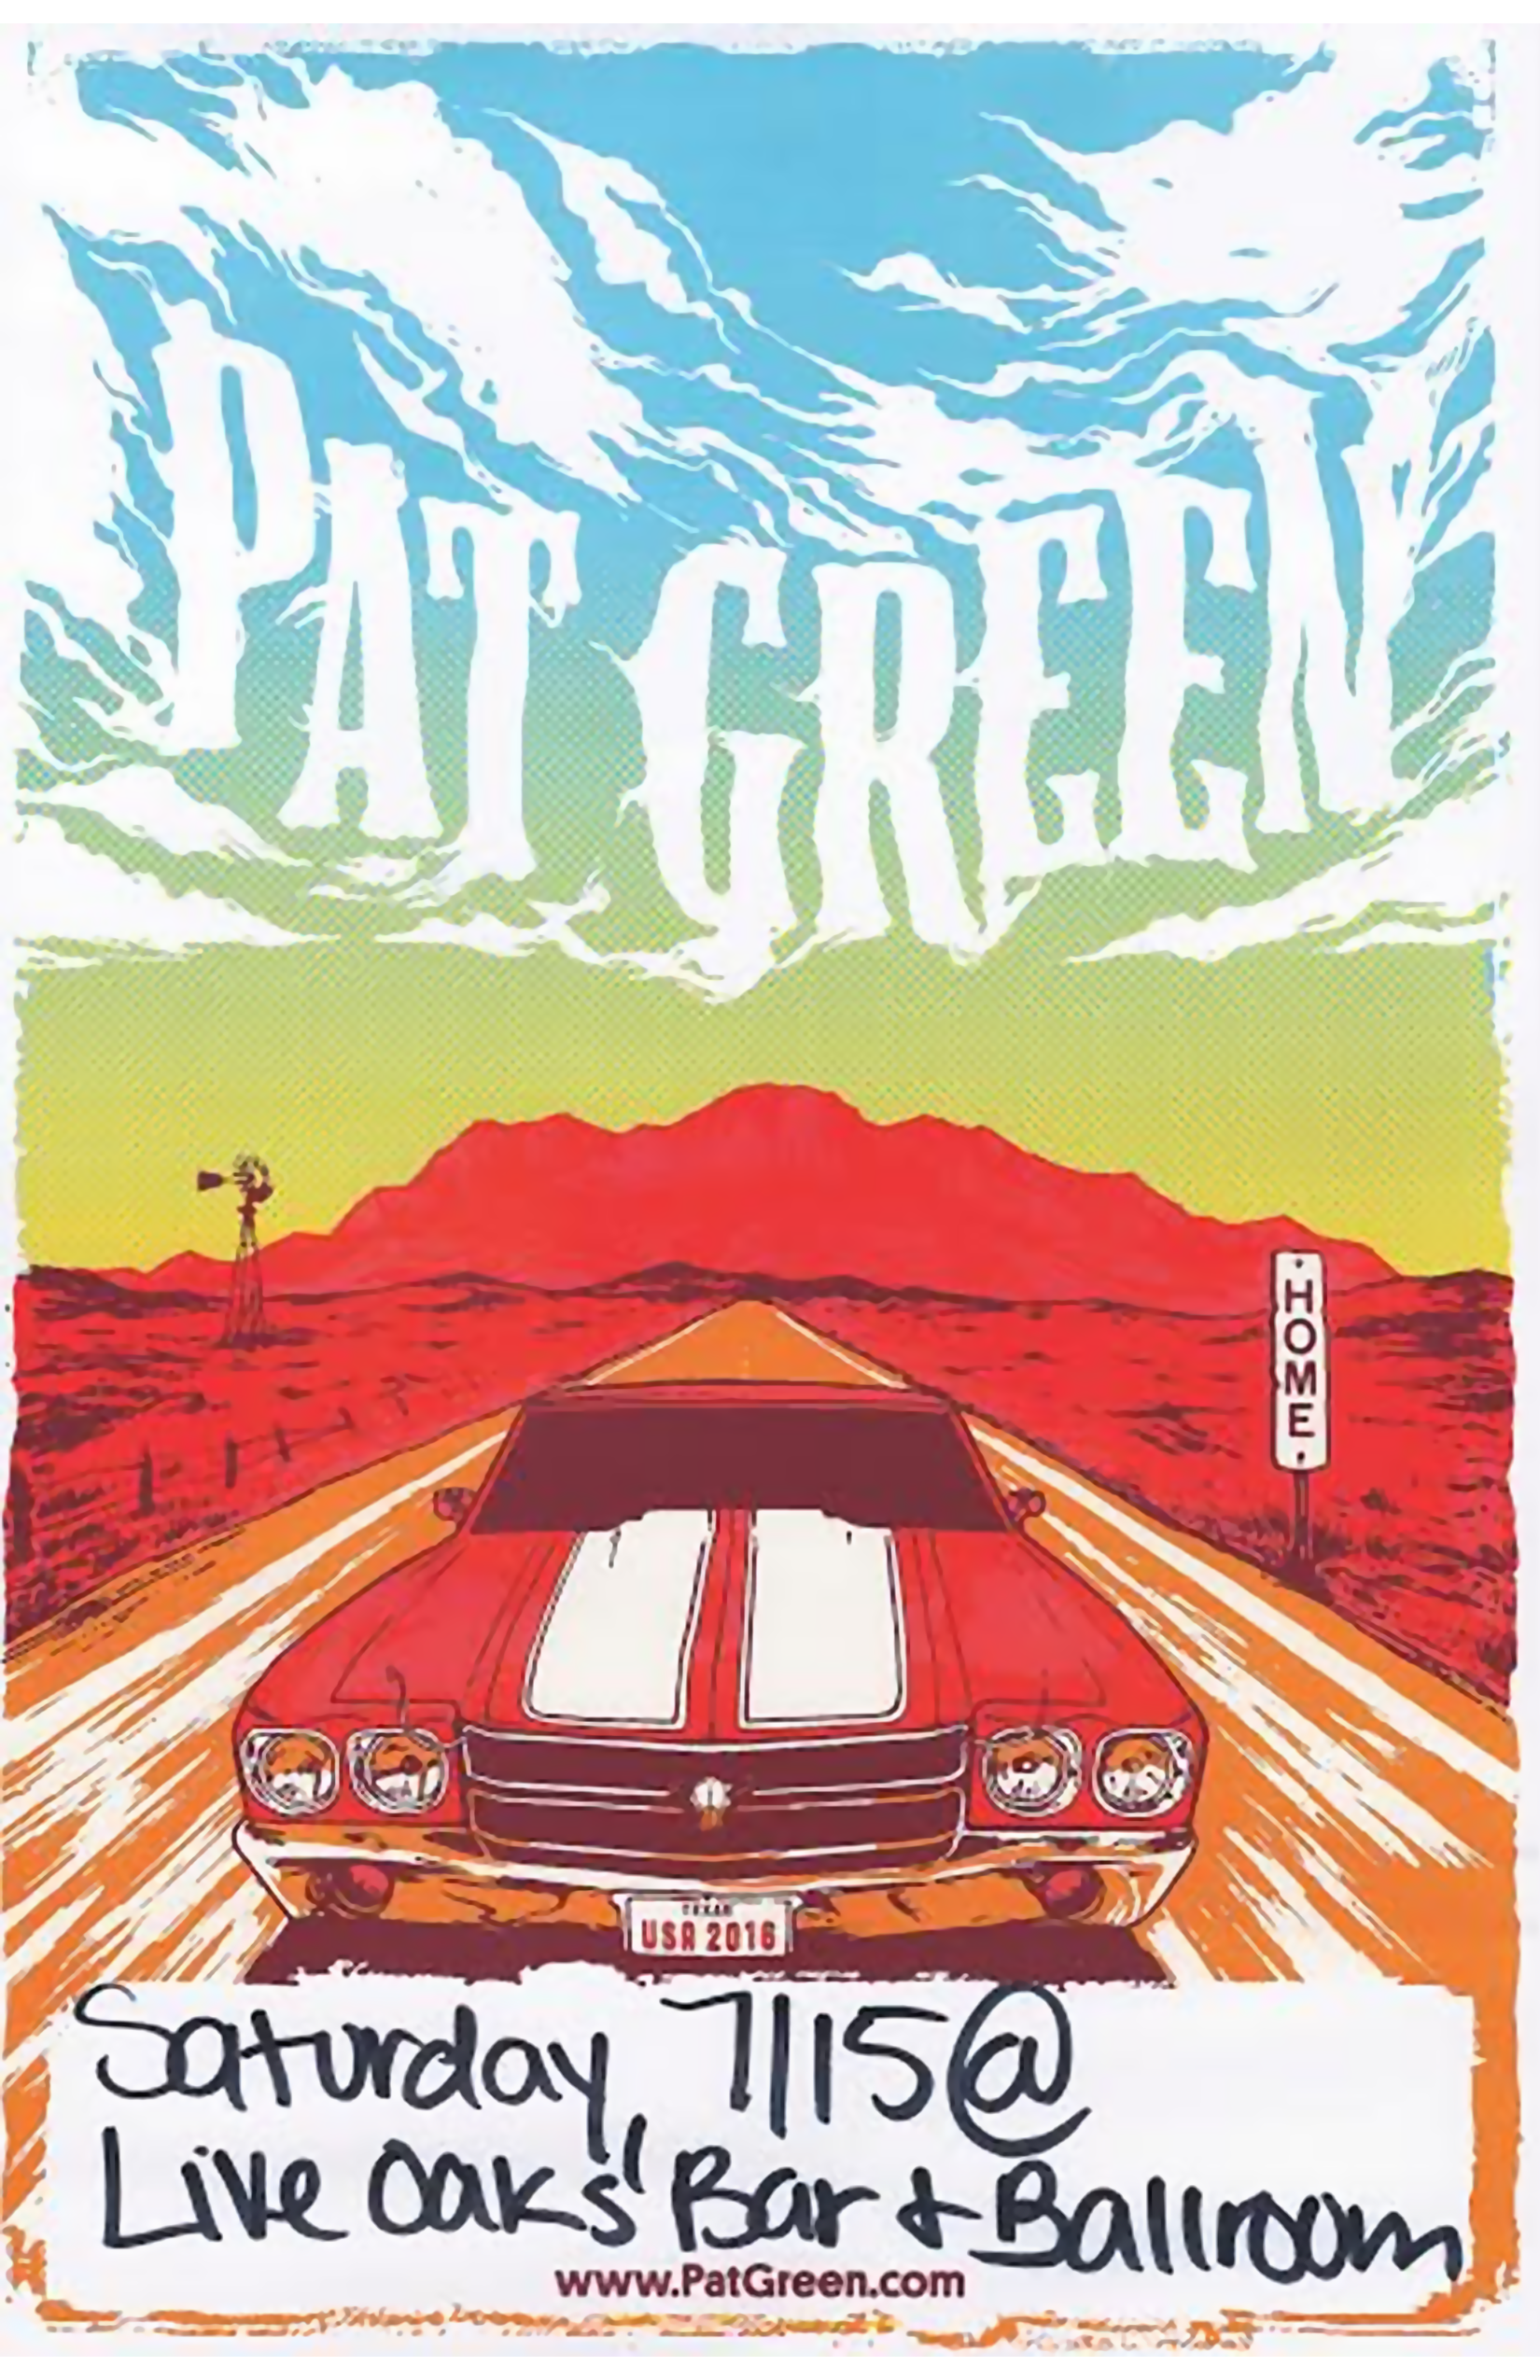 Pat Green • Cody Cooke • Stephen Paul